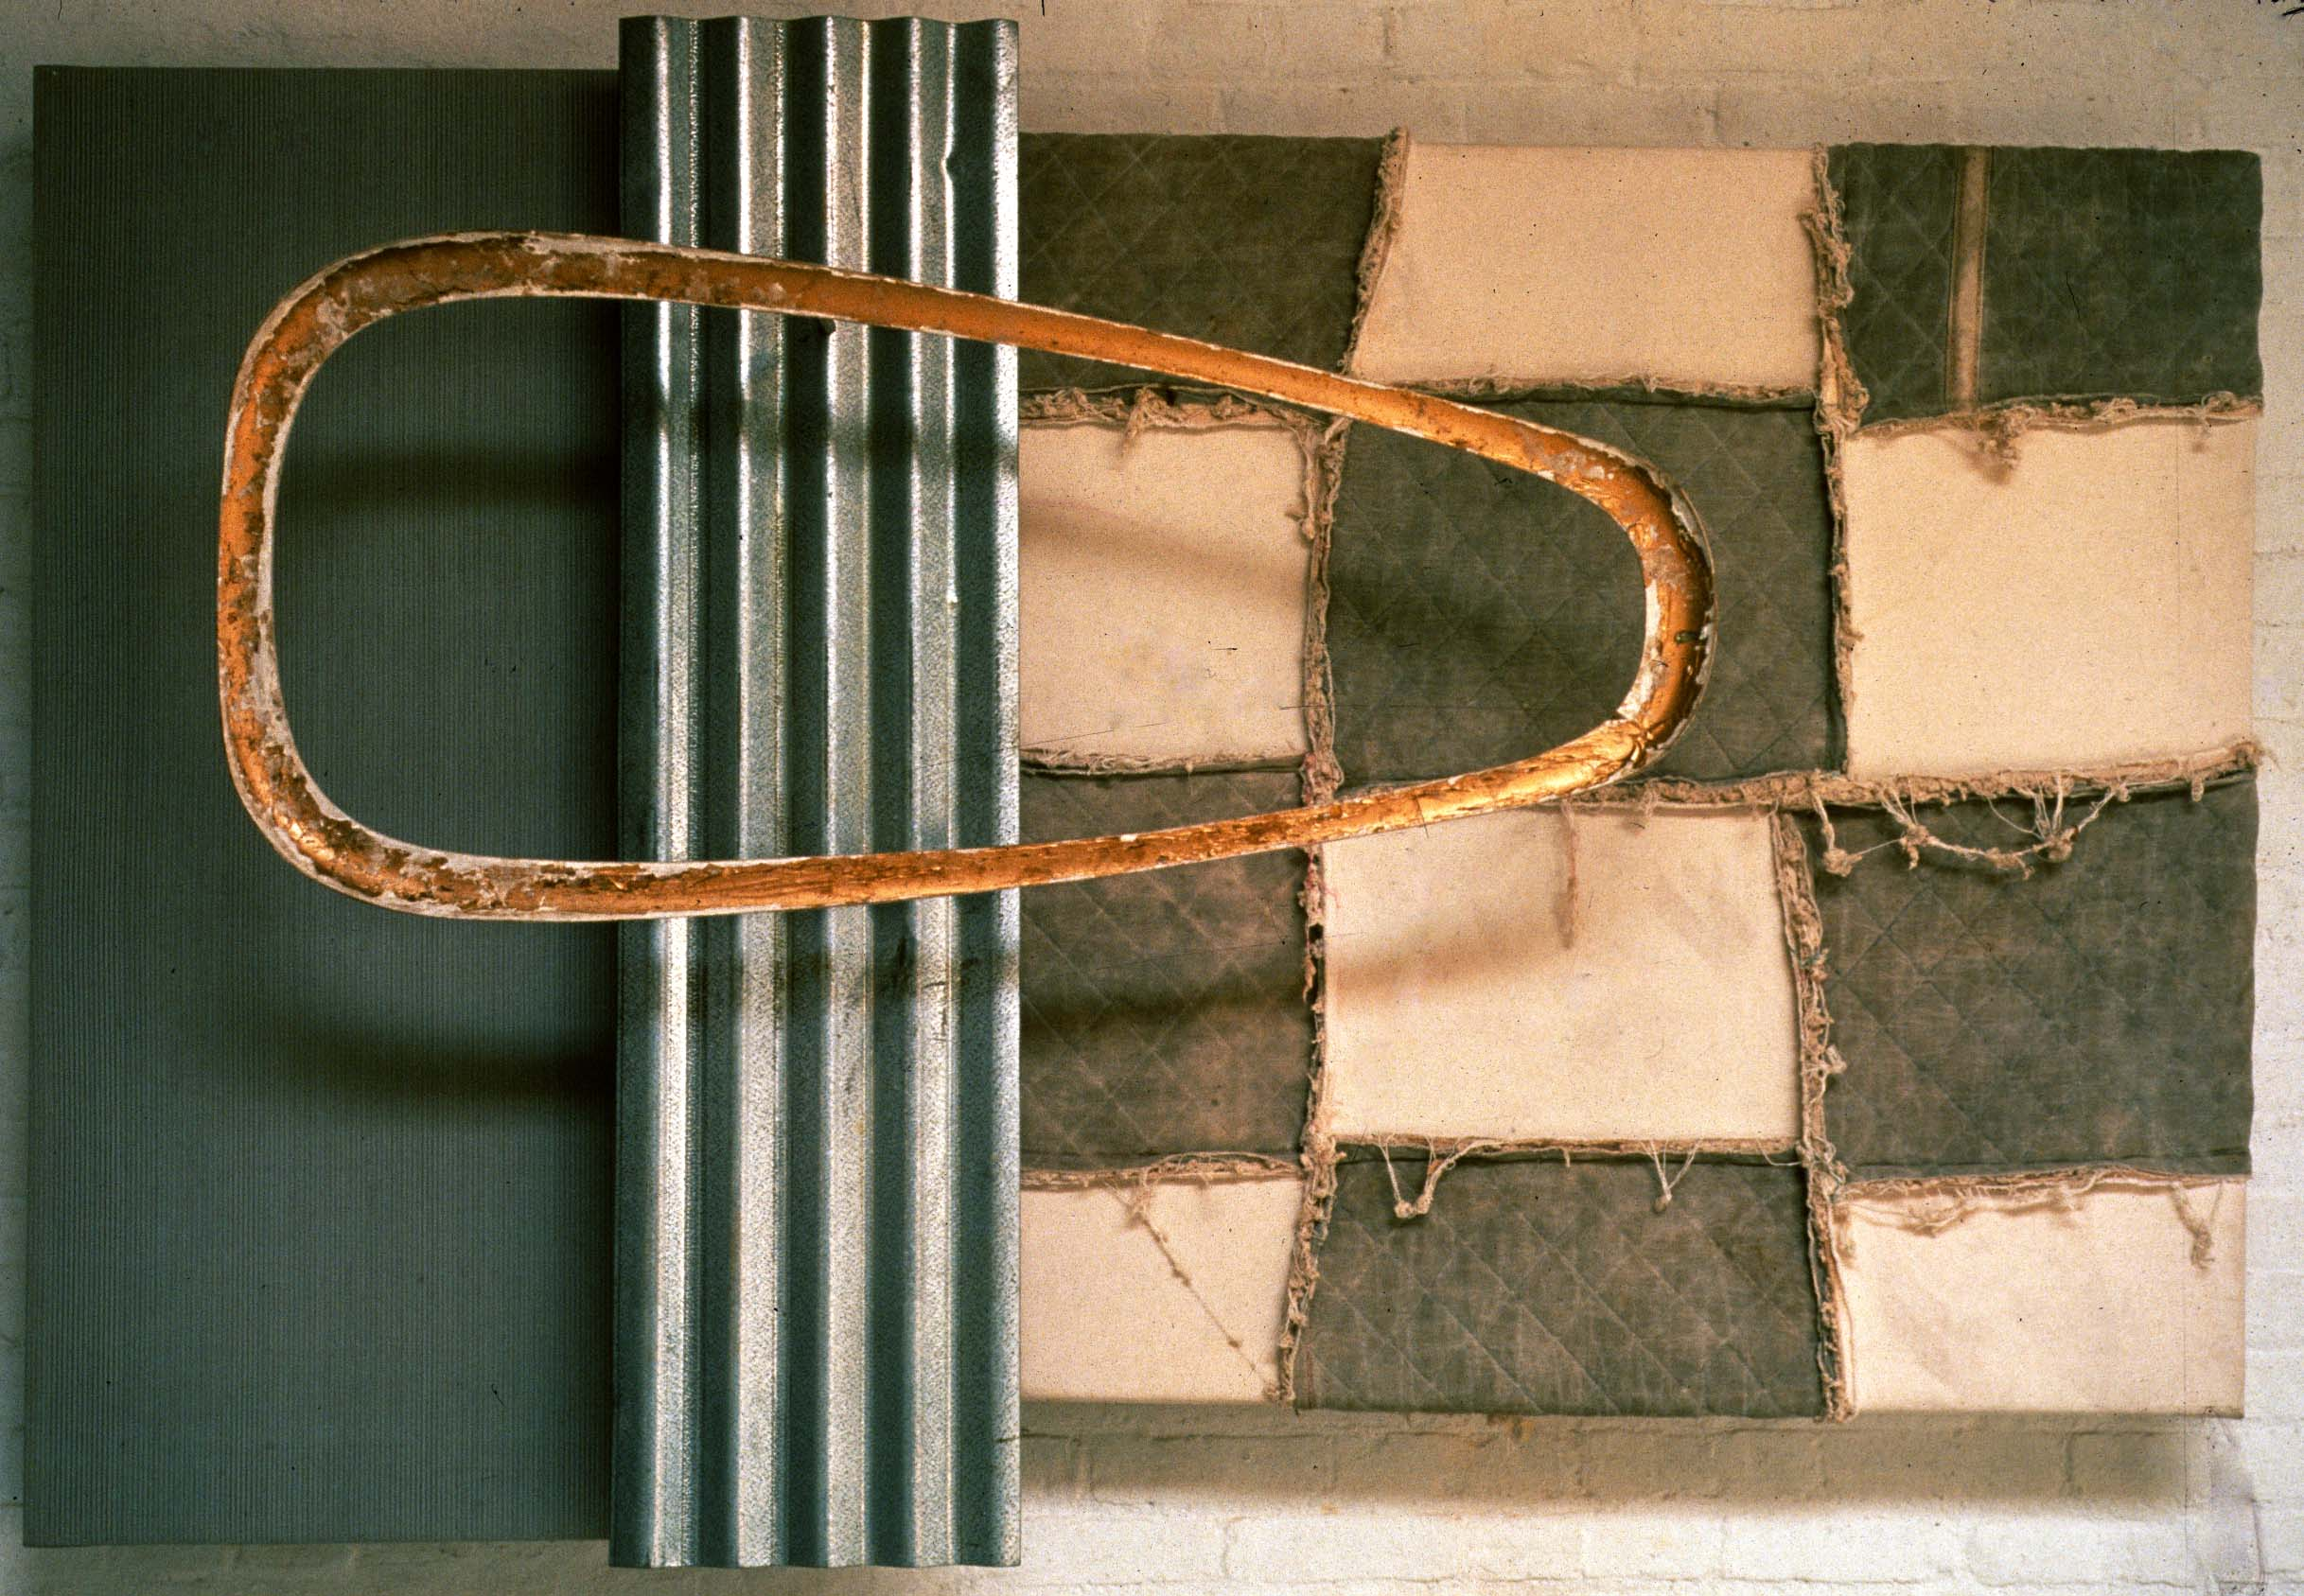 84h x 71w x 17d Wire Mesh, Wood, Gold Leaf, Galvanzed Steel , Canvas, & Quilted Duct © Art Spellings 1989